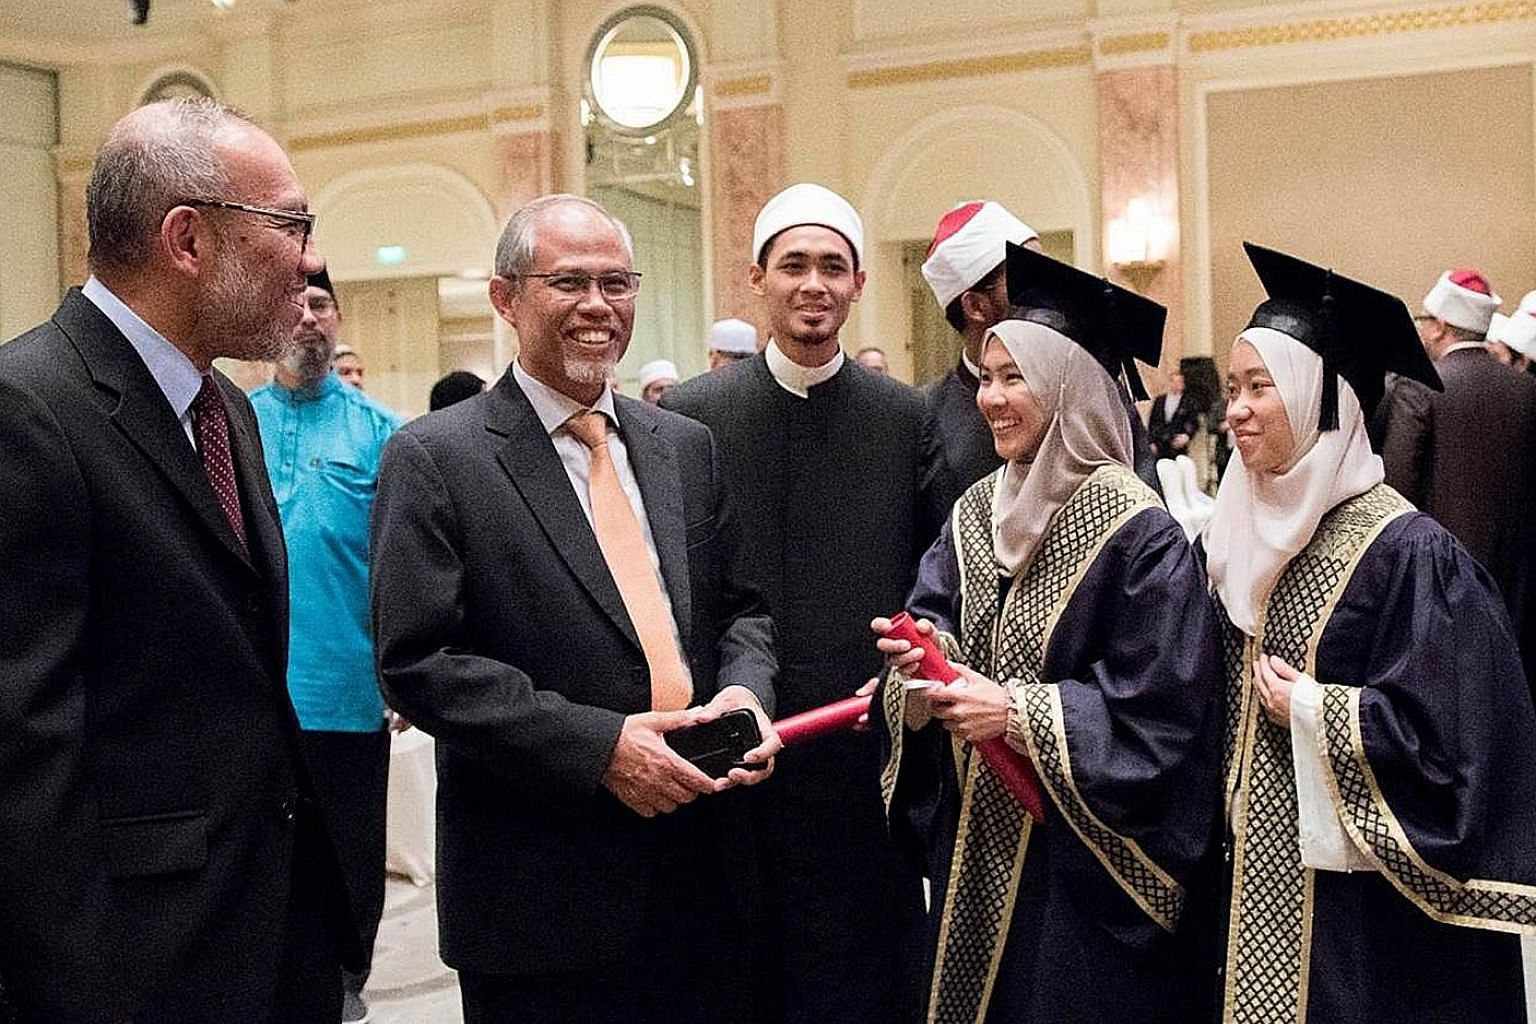 Minister-in-charge of Muslim Affairs Masagos Zulkifli with Singaporean students at Egypt's Al-Azhar University. Muis is stepping up efforts to engage overseas graduates and also introducing student liaison officers who will mentor the 800 Singaporean